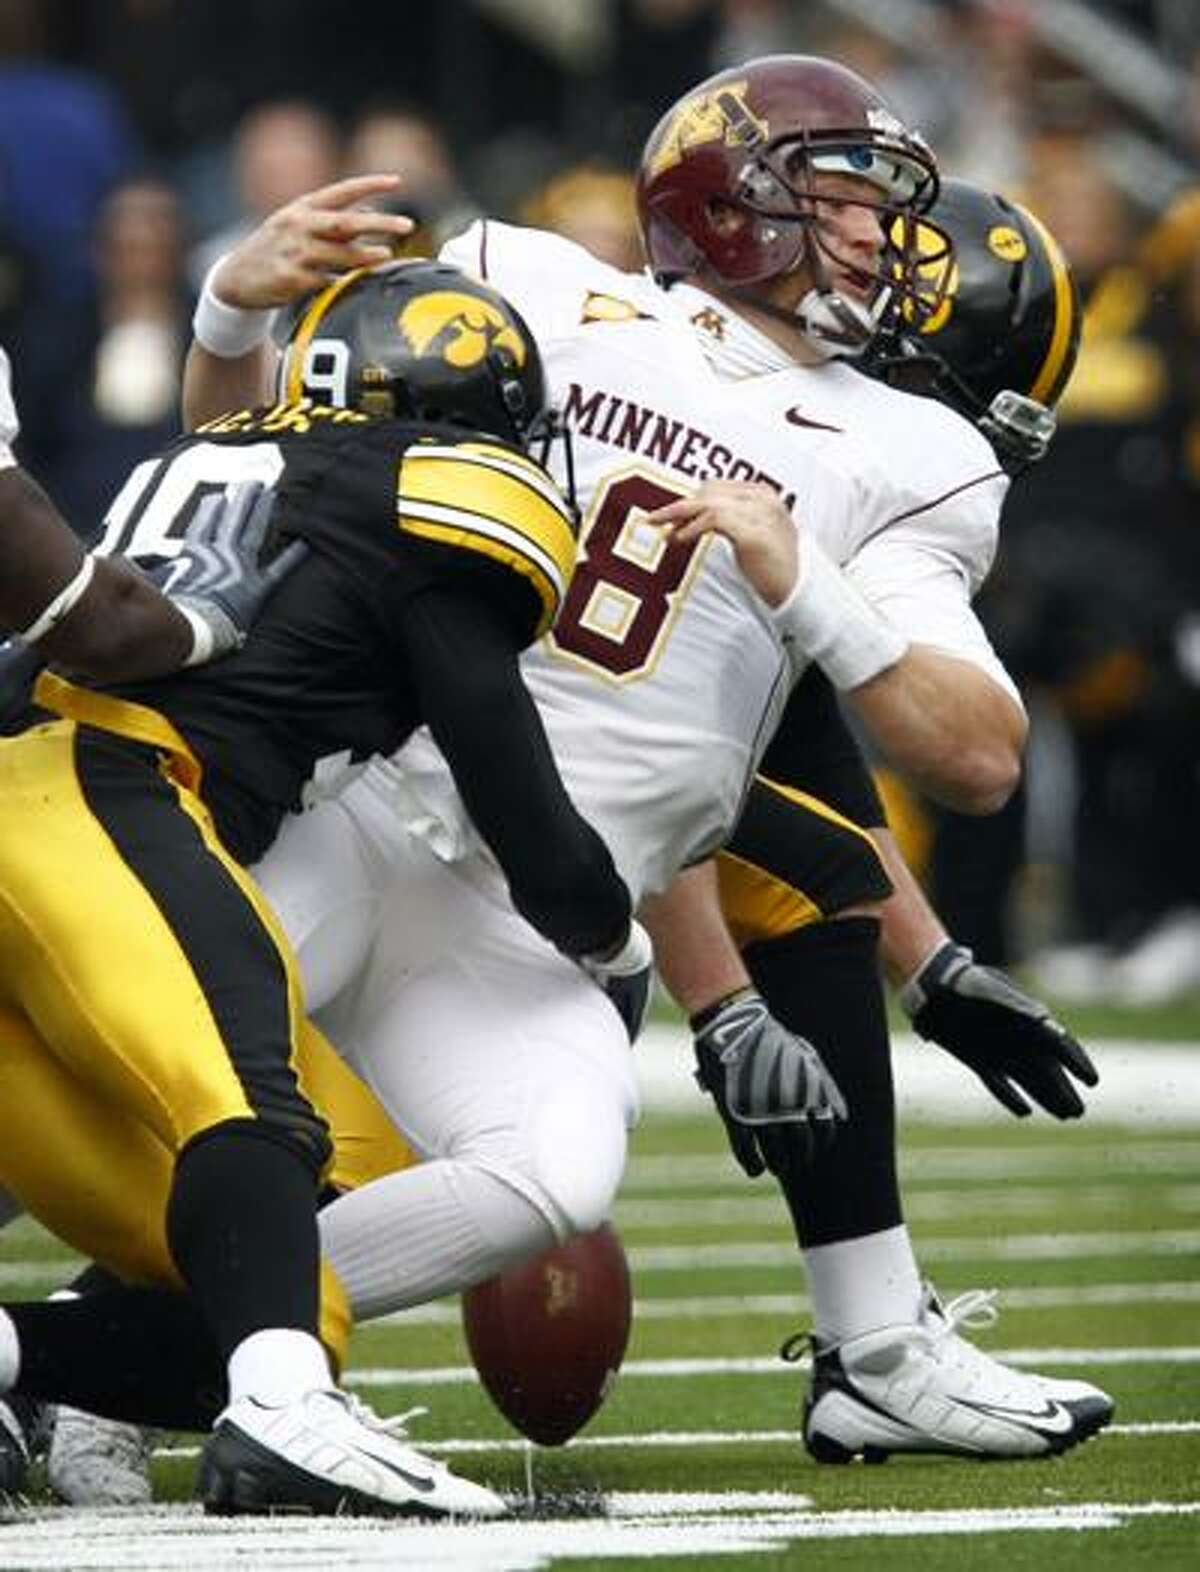 Former Xavier High School star and Iowa defensive back, Amari Spievey, was selected with the 66th overall pick in the third round by the Detroit Lions in the 2010 NFL draft. (Associated Press)